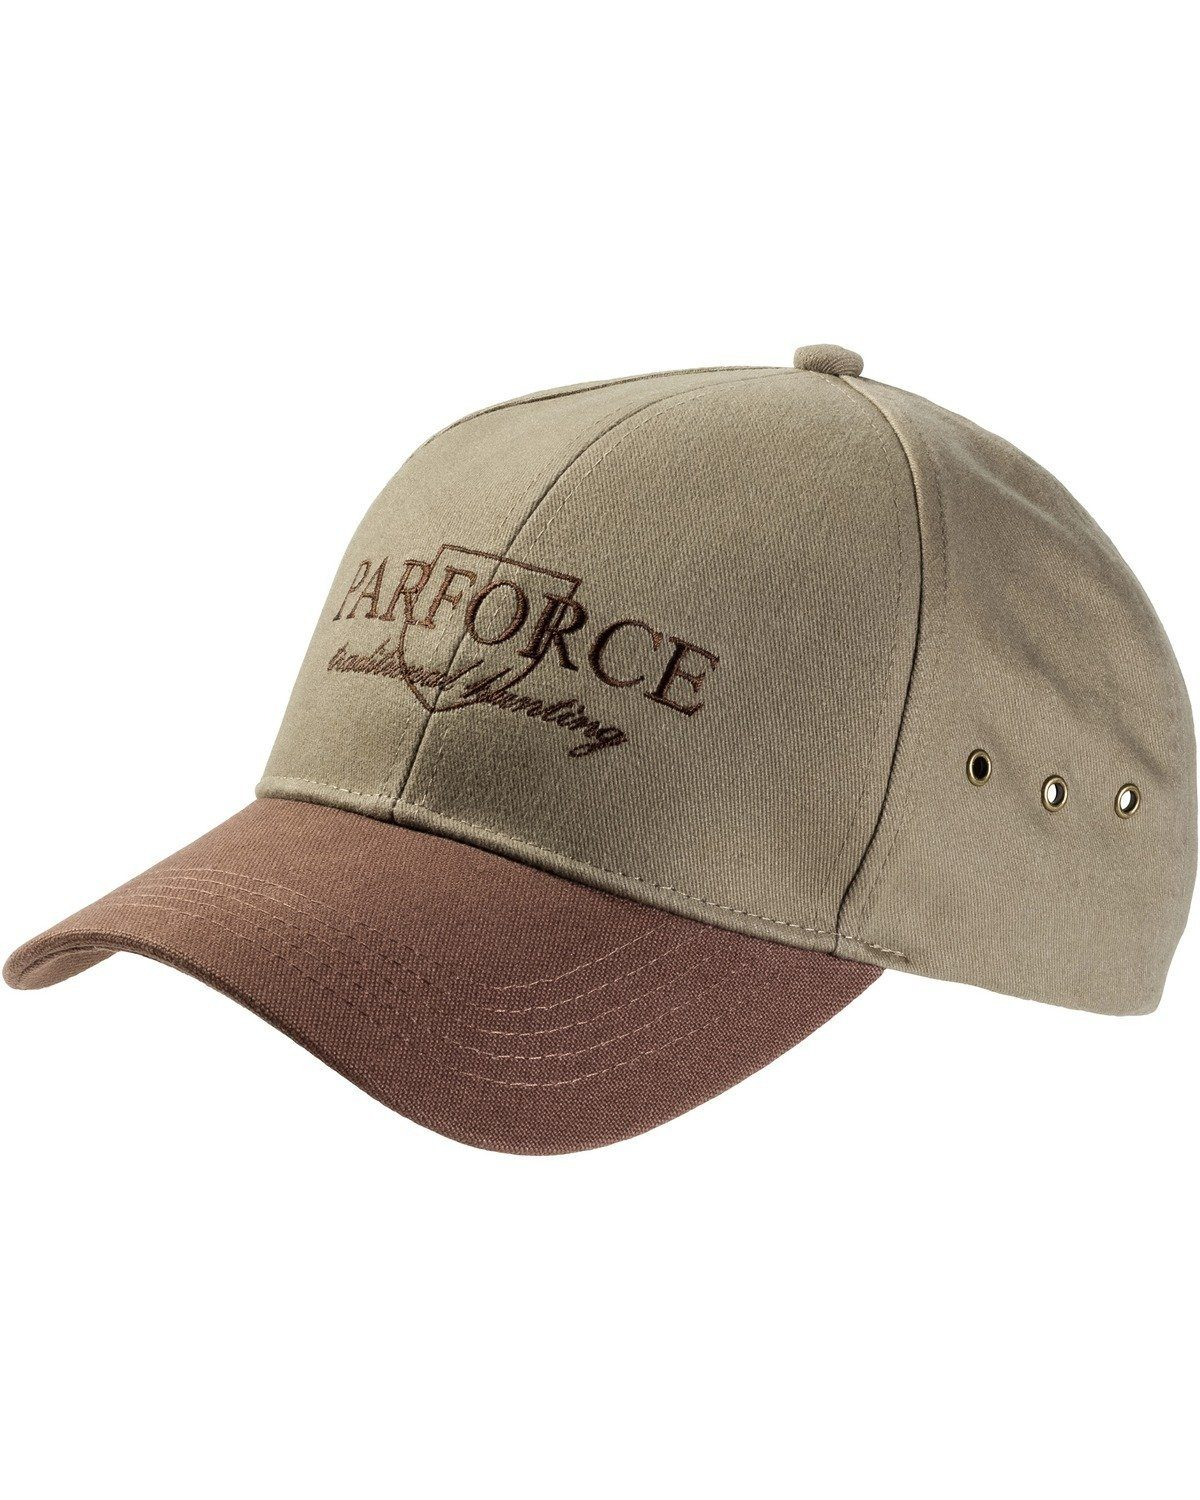 Parforce Traditional Hunting Jagd-Cap